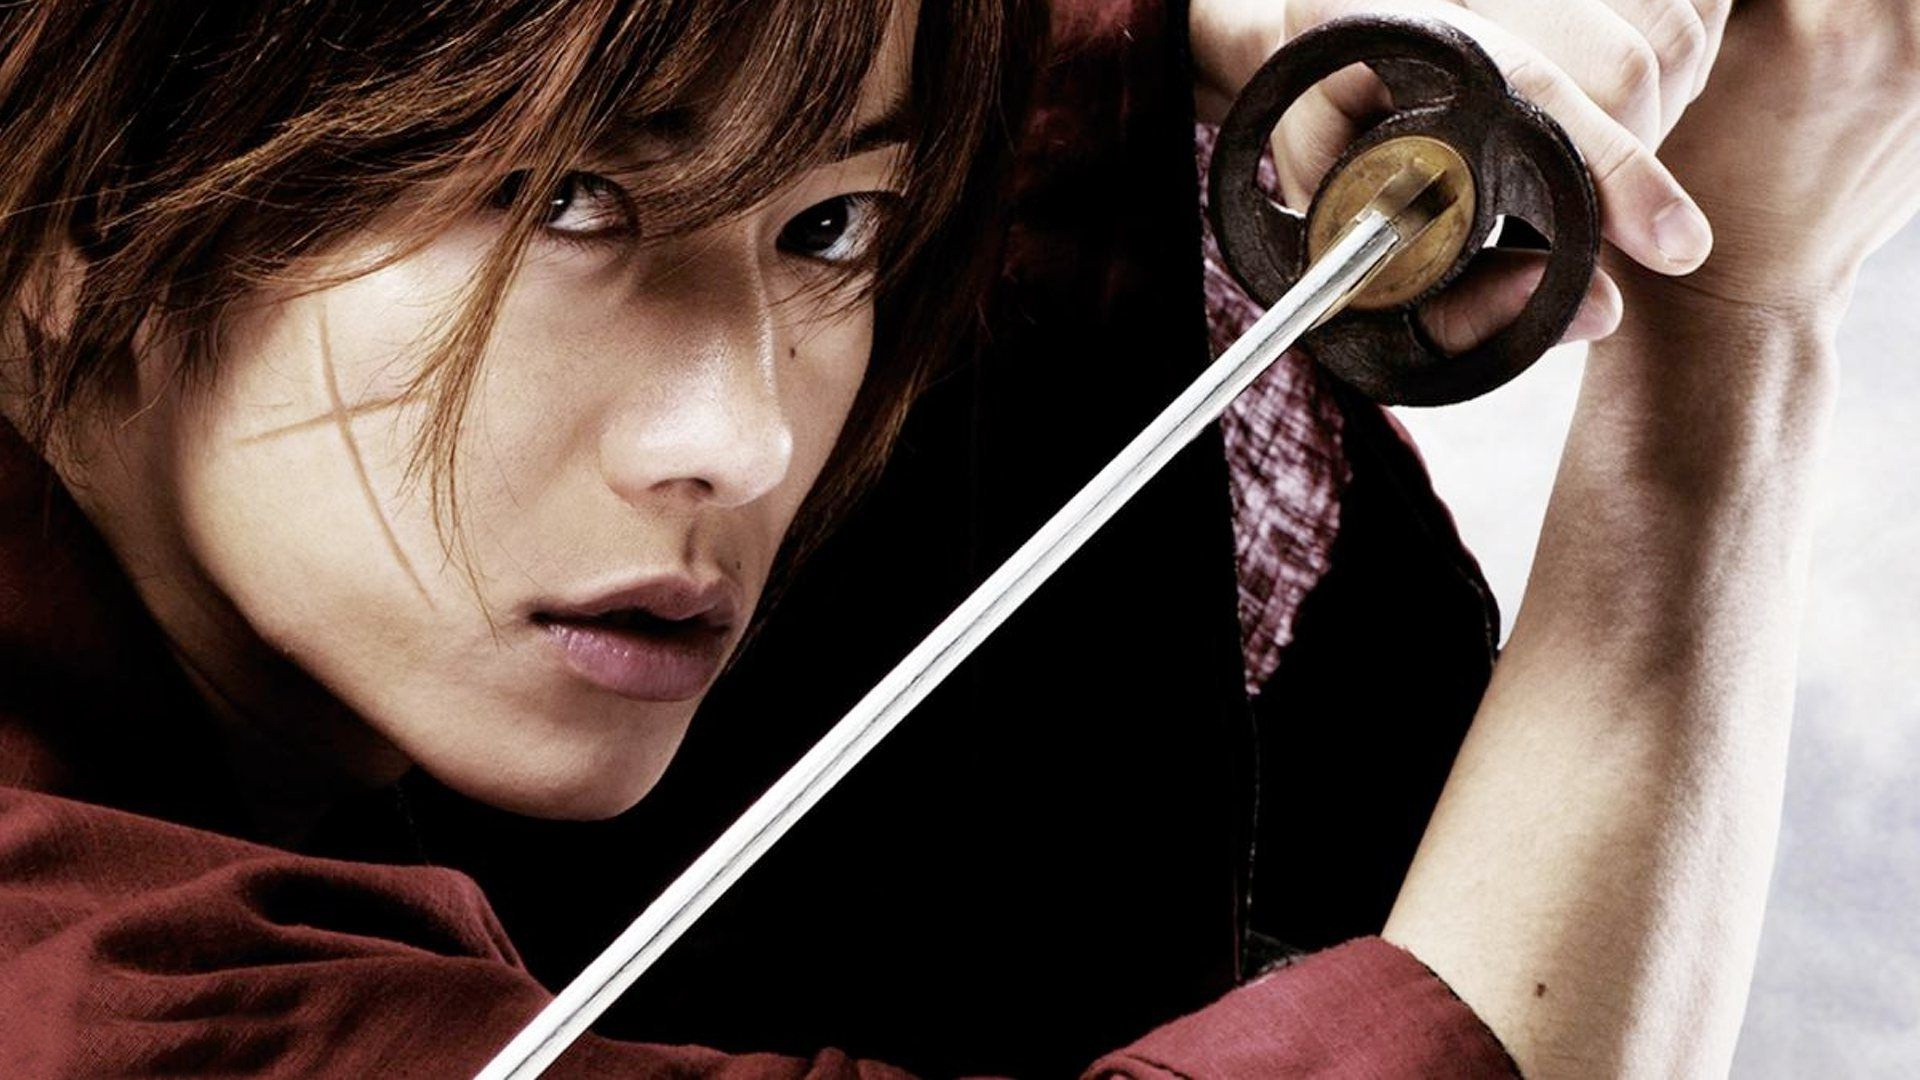 Rurouni Kenshin : The Legend Ends (15) Close-Up Film Review